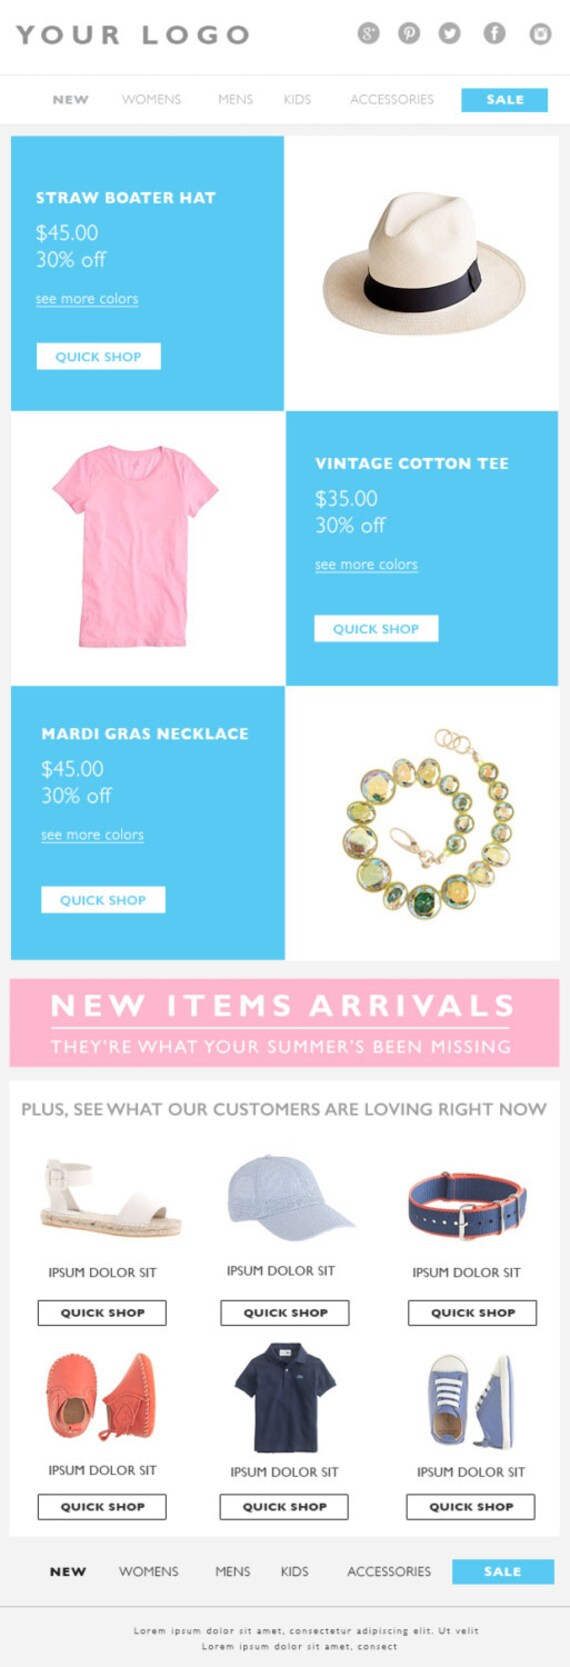 ecommerce email template